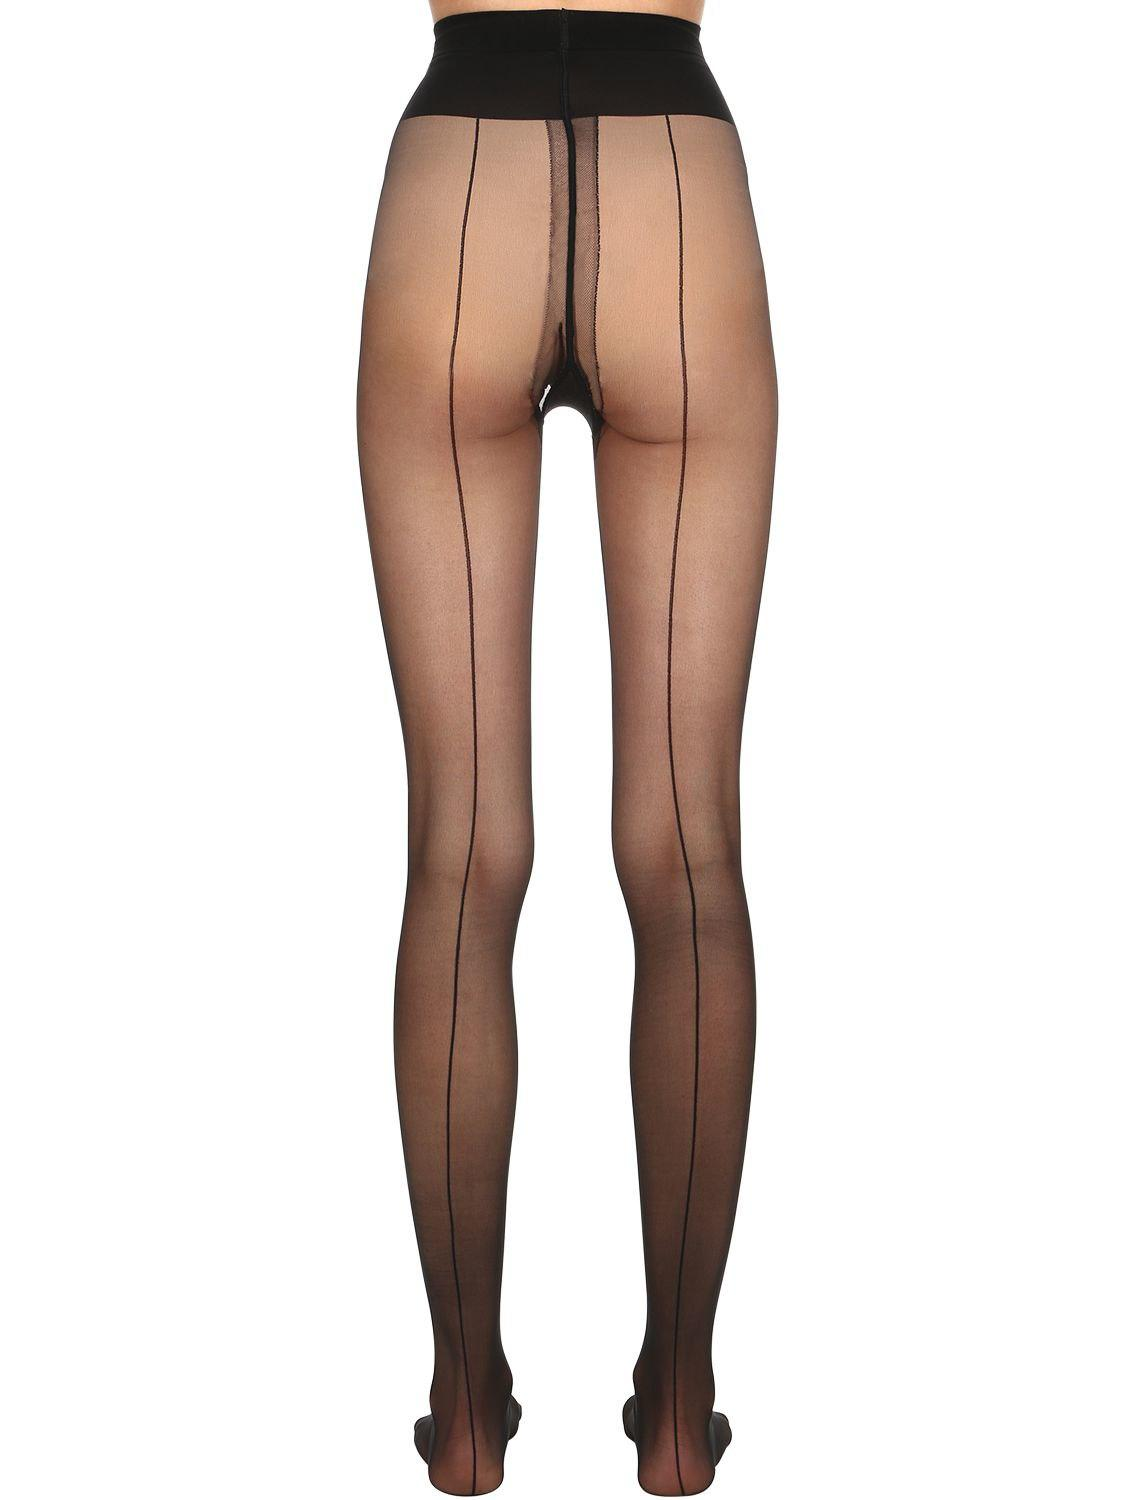 71f64e8d06b Wolford Individual 10 Den Back Seam Tights in Black - Lyst